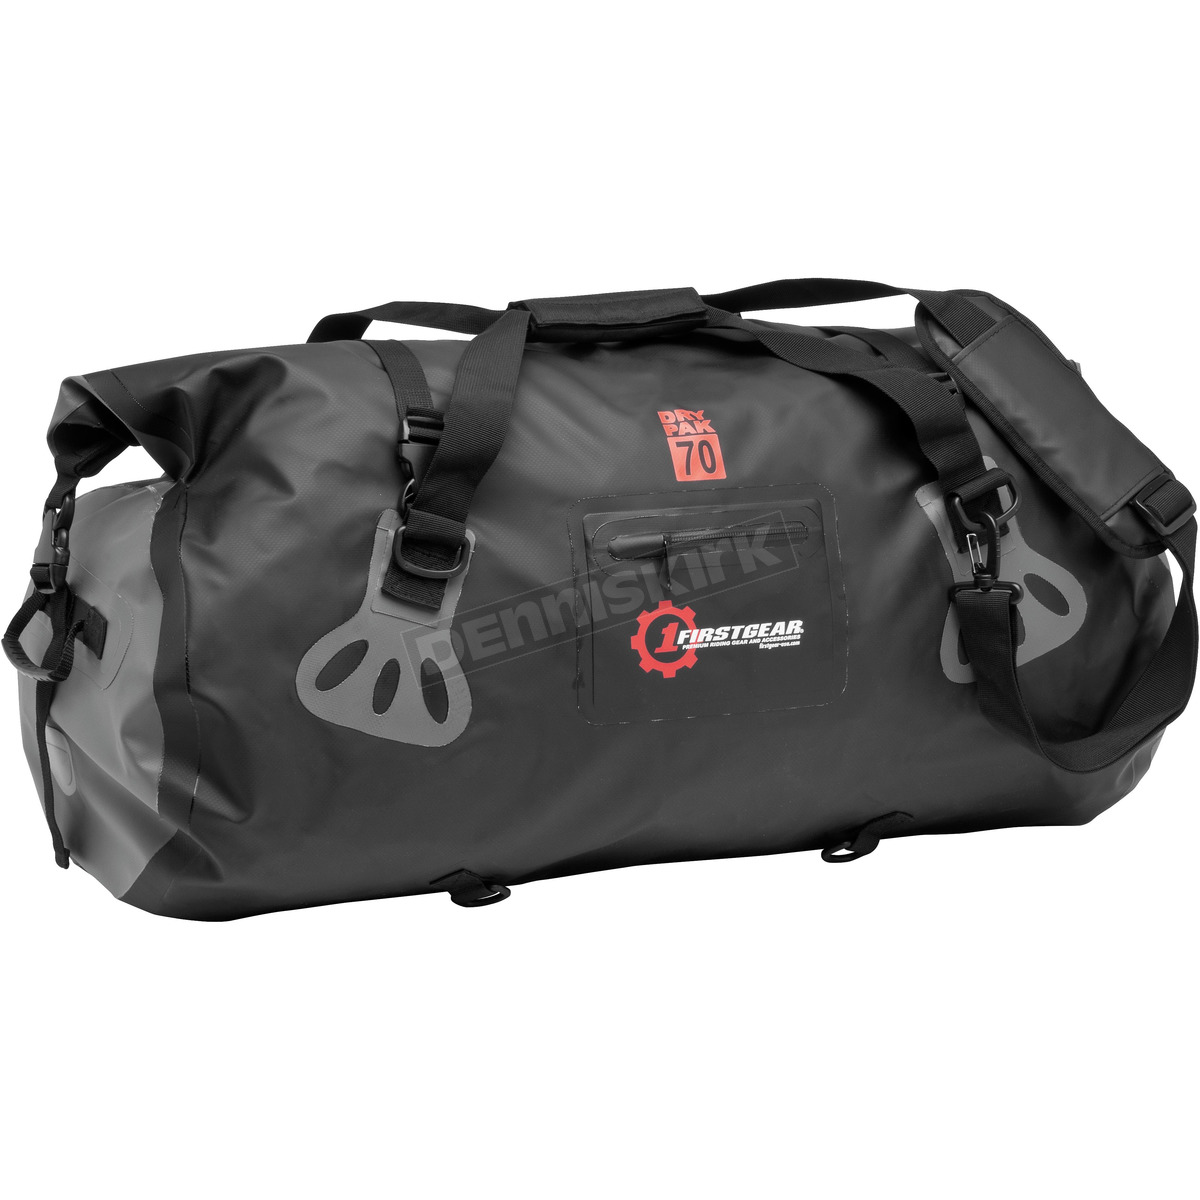 Firstgear Torrent Waterproof 70L Duffel Bag - 107281 Dirt Bike ... abff3d00dd117